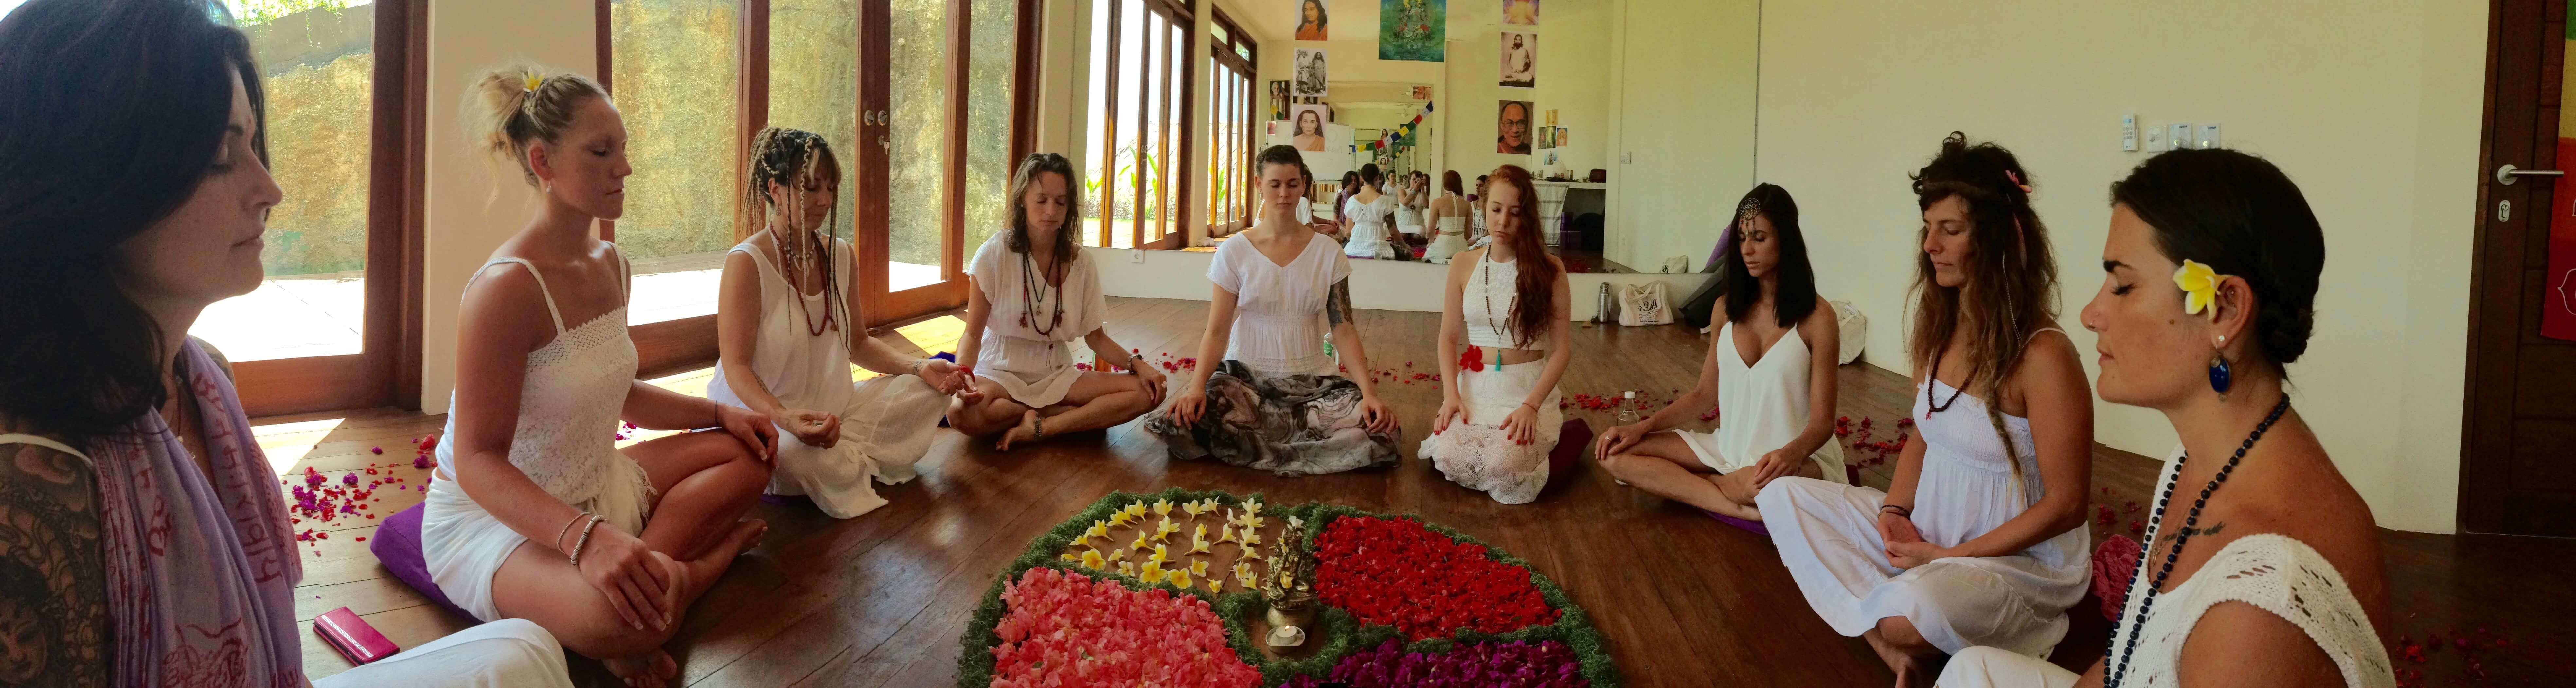 300-hour-yoga-teachers-training-Goa-2018